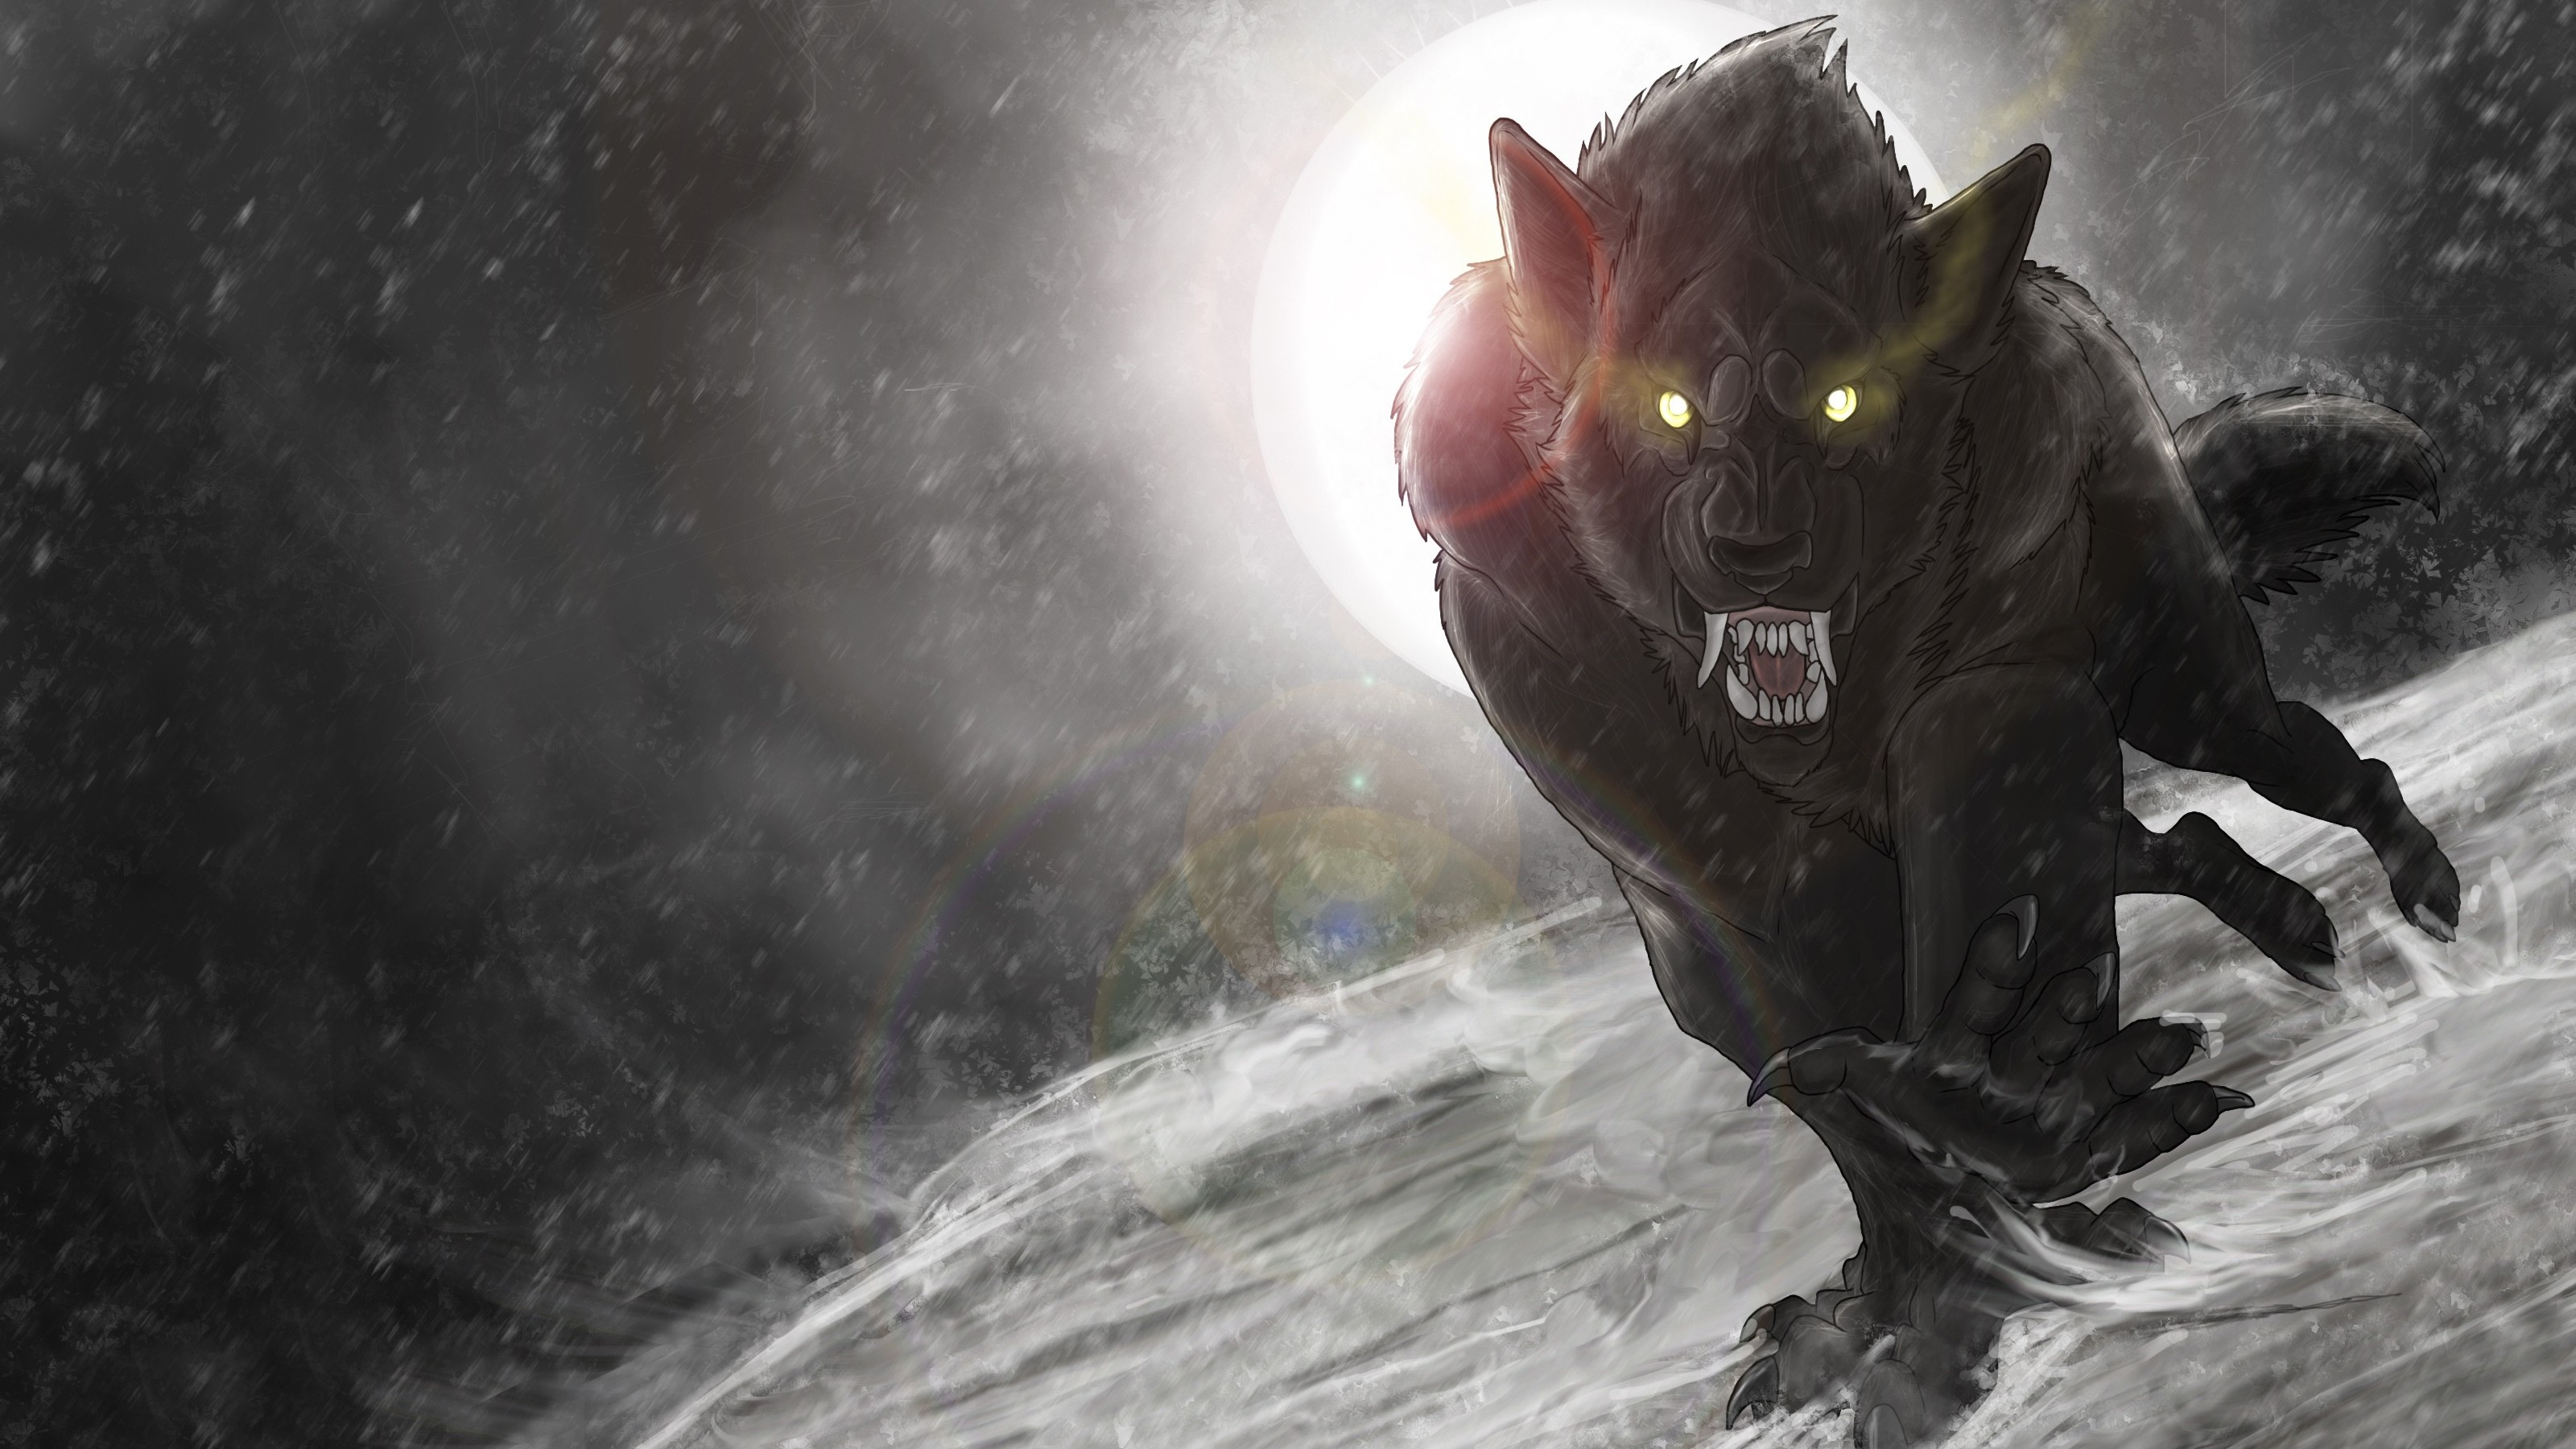 3200x1800 Van Helsing Werewolf Wallpapers | HD Wallpapers | Pinterest | Werewolves  and Wallpaper